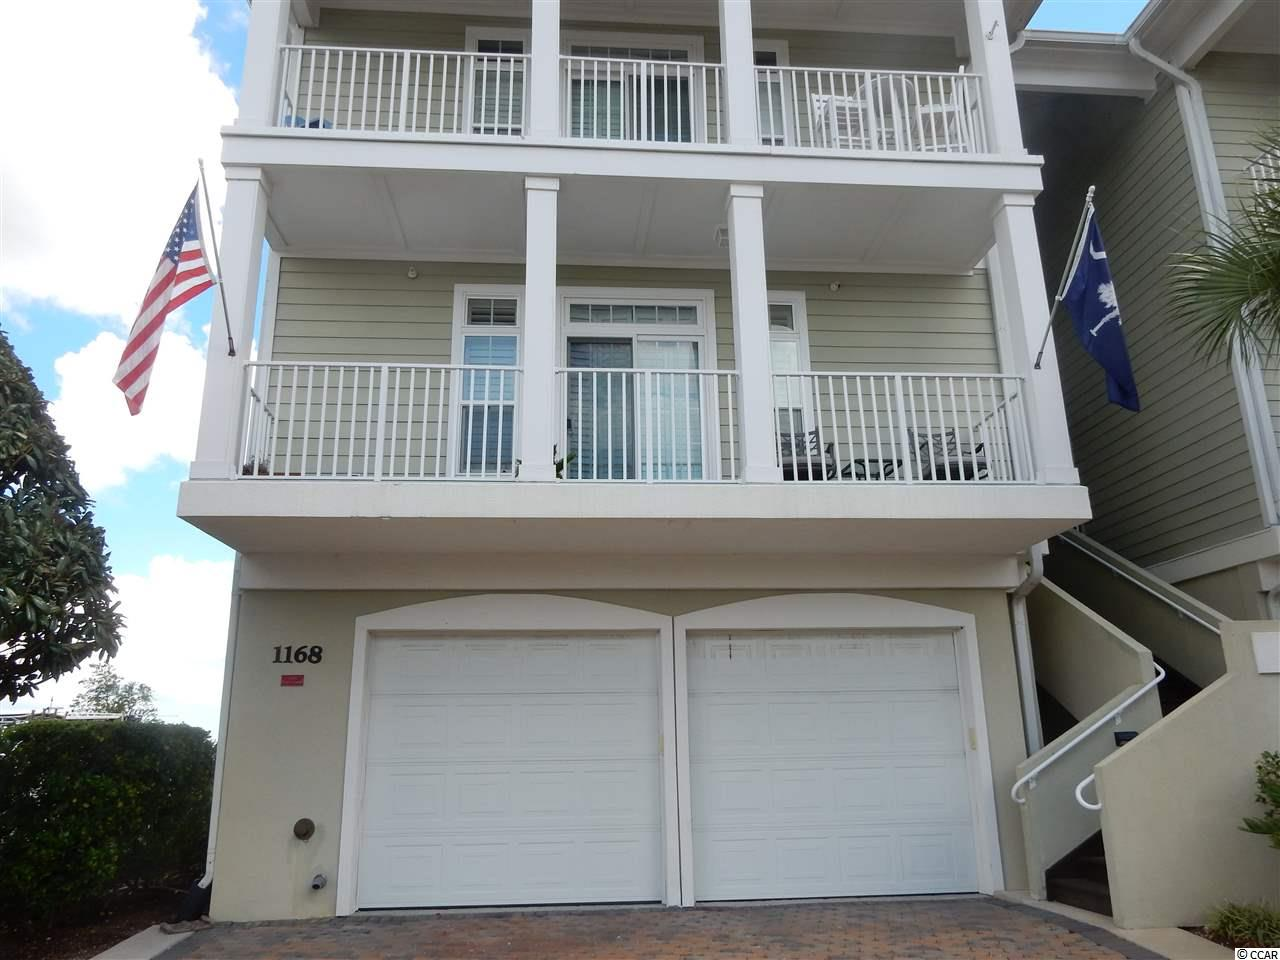 Condo / Townhome / Villa for Sale at 1168 Belle Isle Road 1168 Belle Isle Road Georgetown, South Carolina 29440 United States